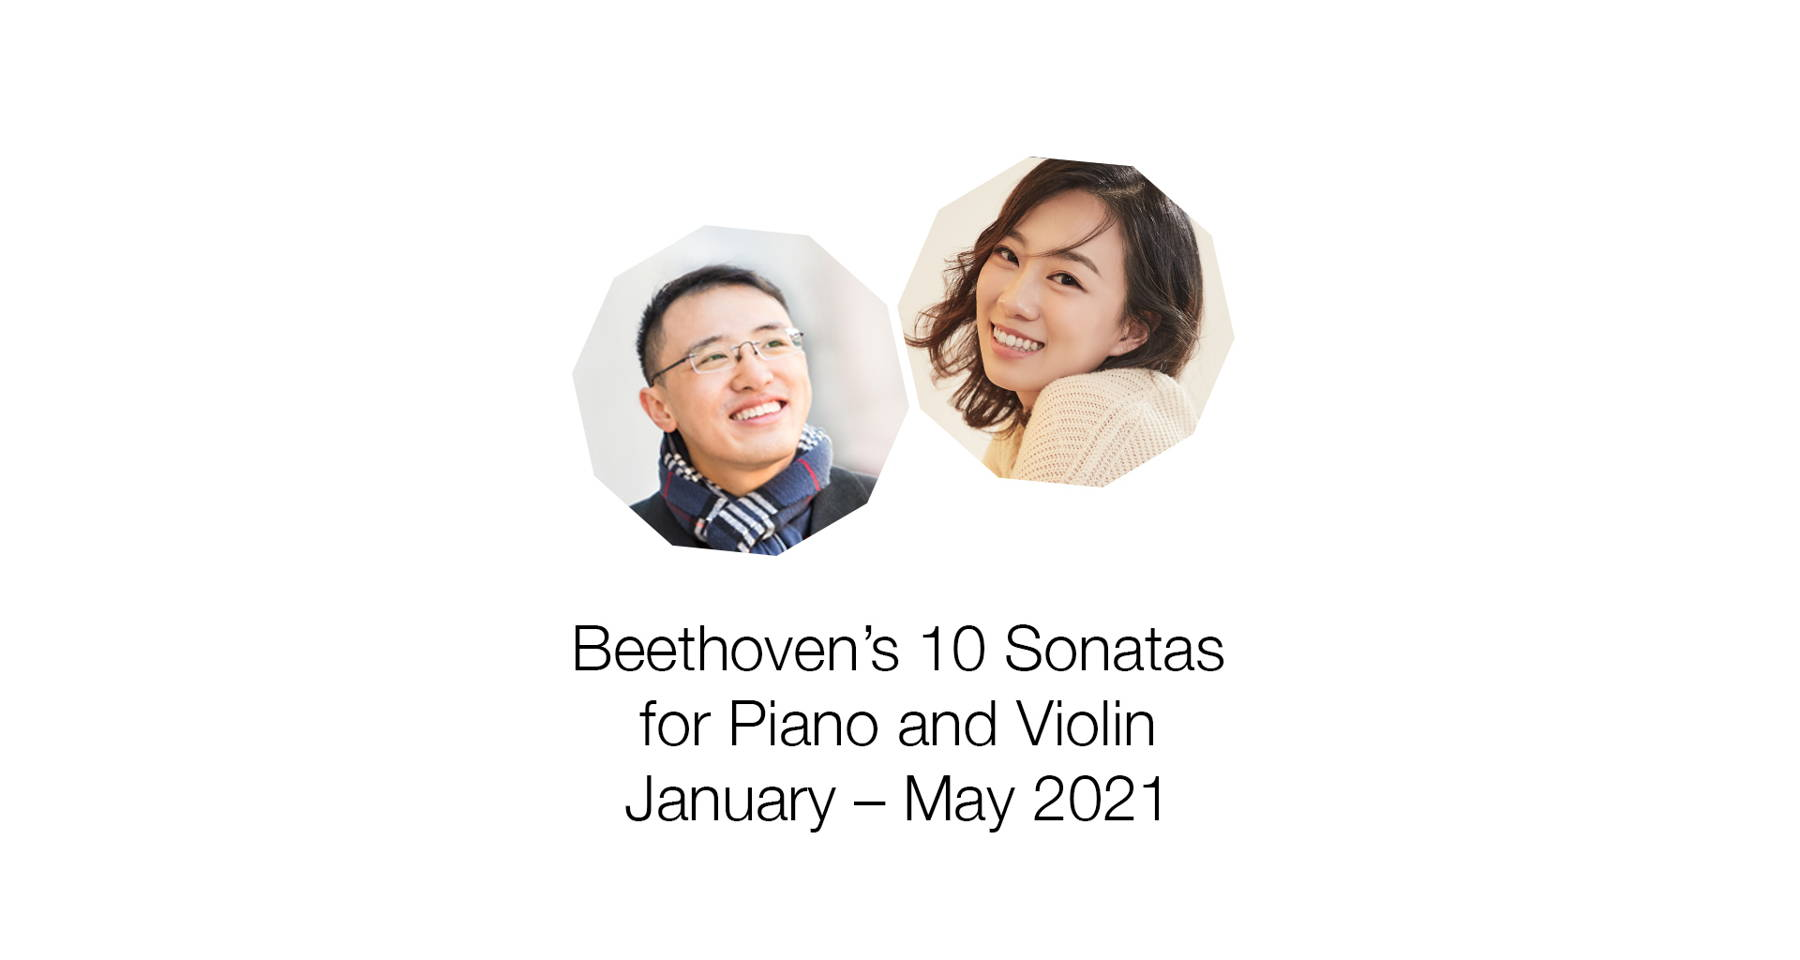 Max Tan and Friends: The Beethoven Sonata Cycle - Op. 30 No. 1 & Op. 47